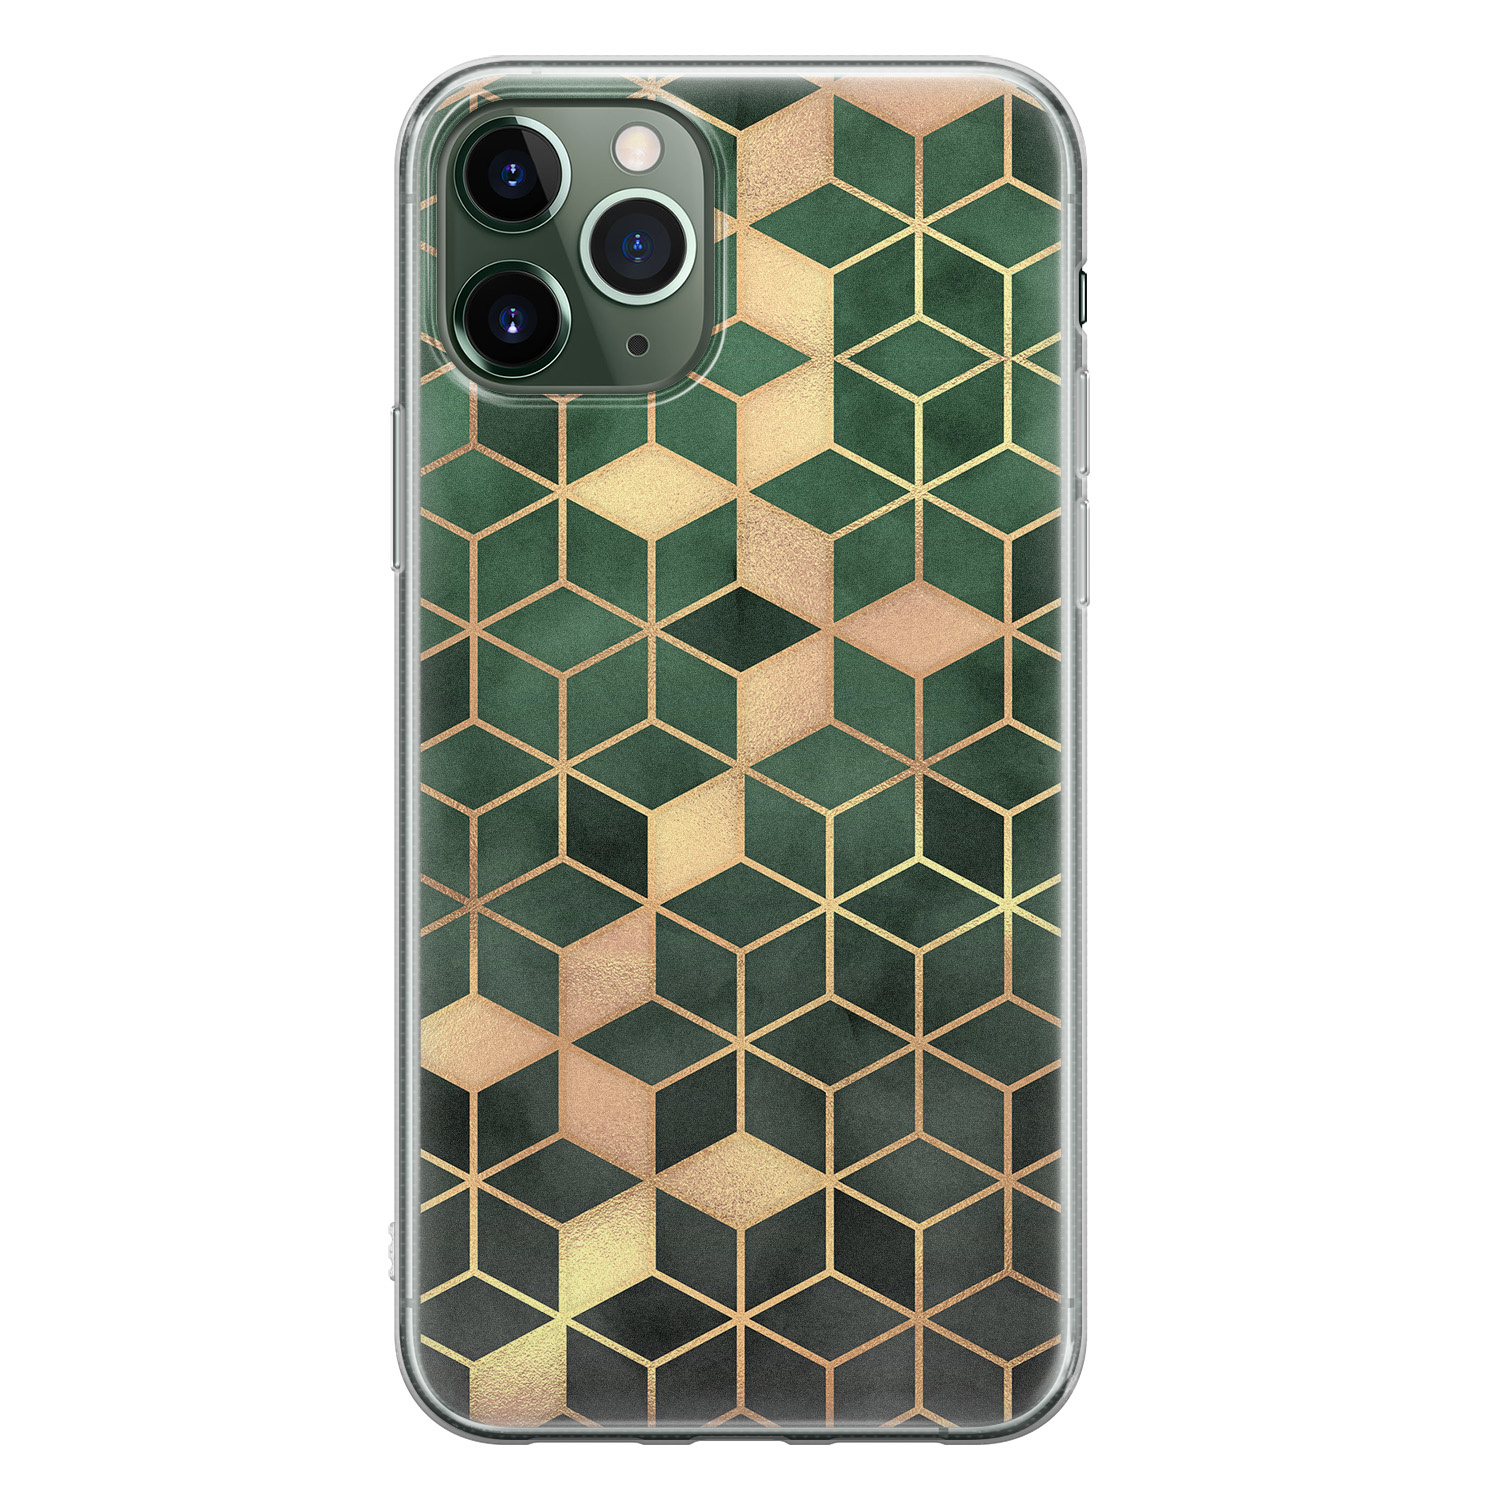 iPhone 11 Pro siliconen hoesje - Green cubes